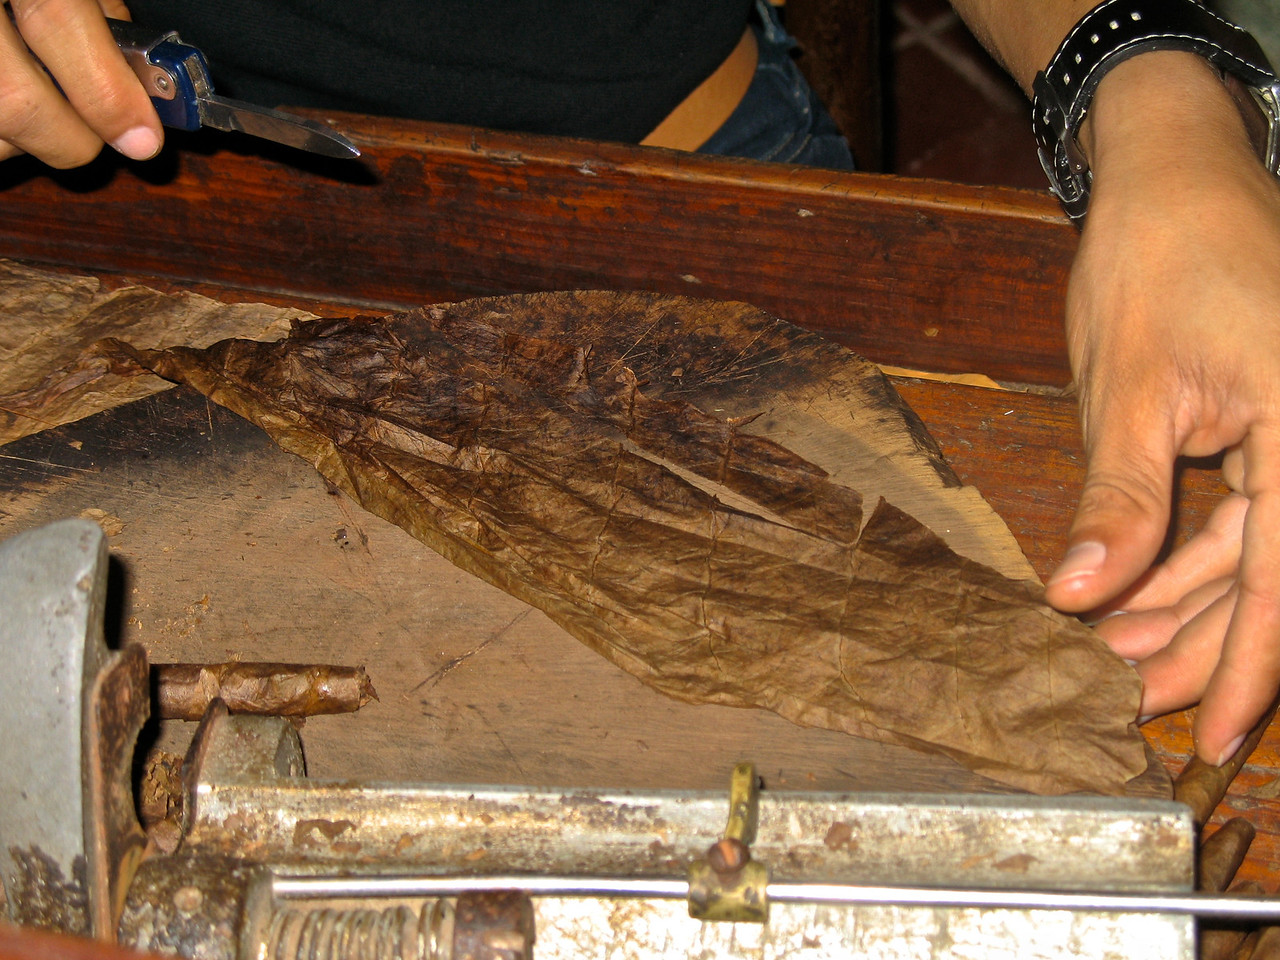 The rolling process then begins, by adding layers of leaves to the outside.